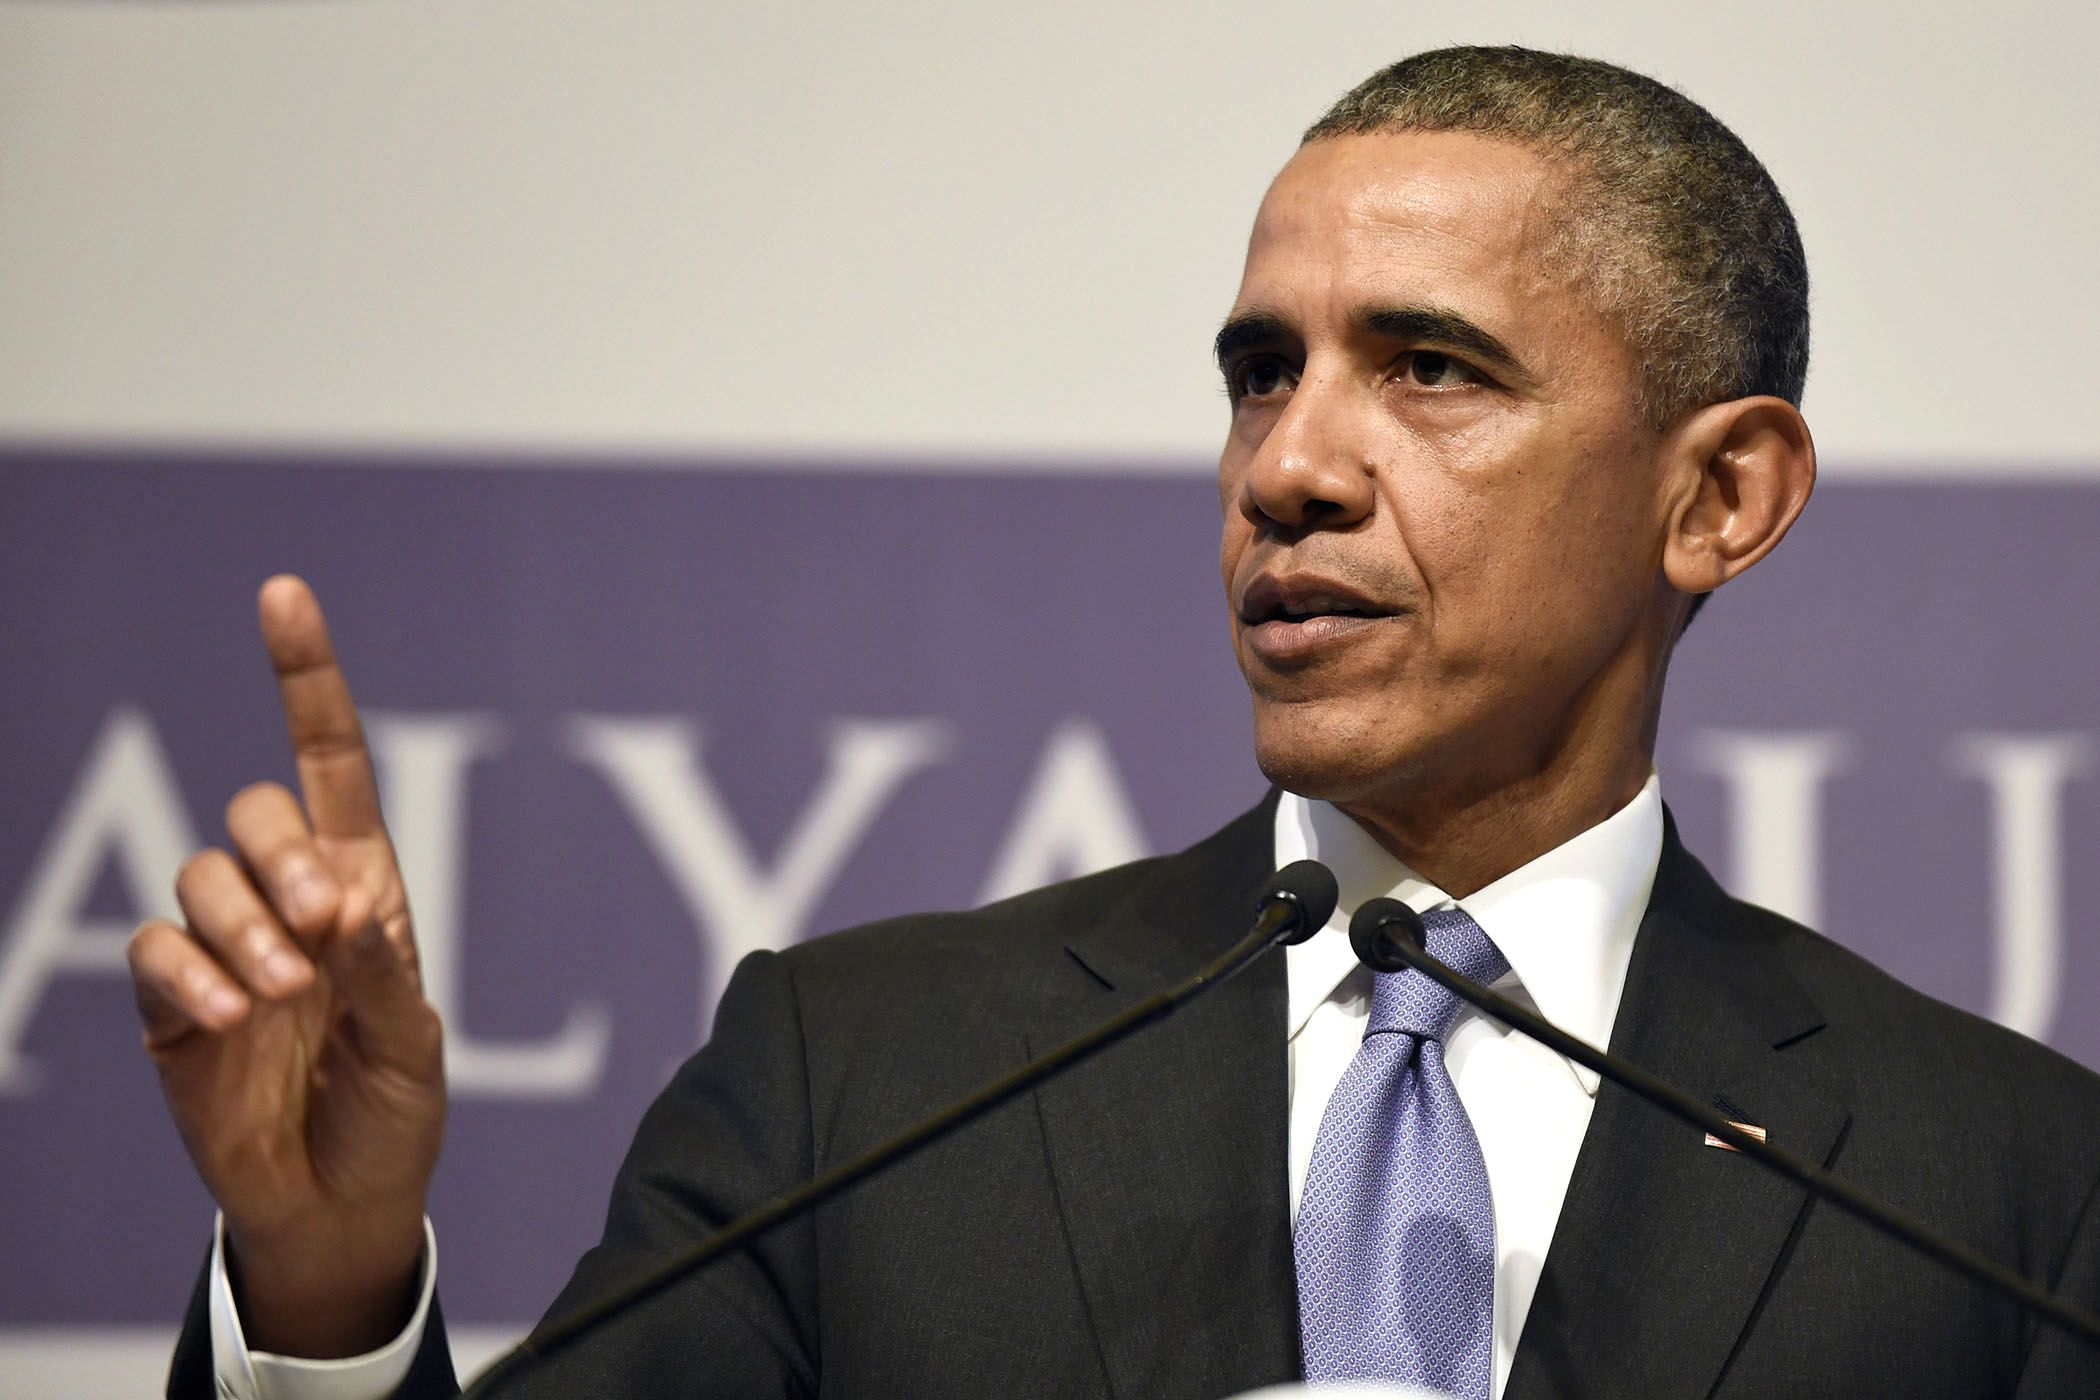 Some U.S. leaders may have found it easy to announce this morning that we're simply too afraid to welcome any of ISIS's victims as refugees. Obama aimed higher.